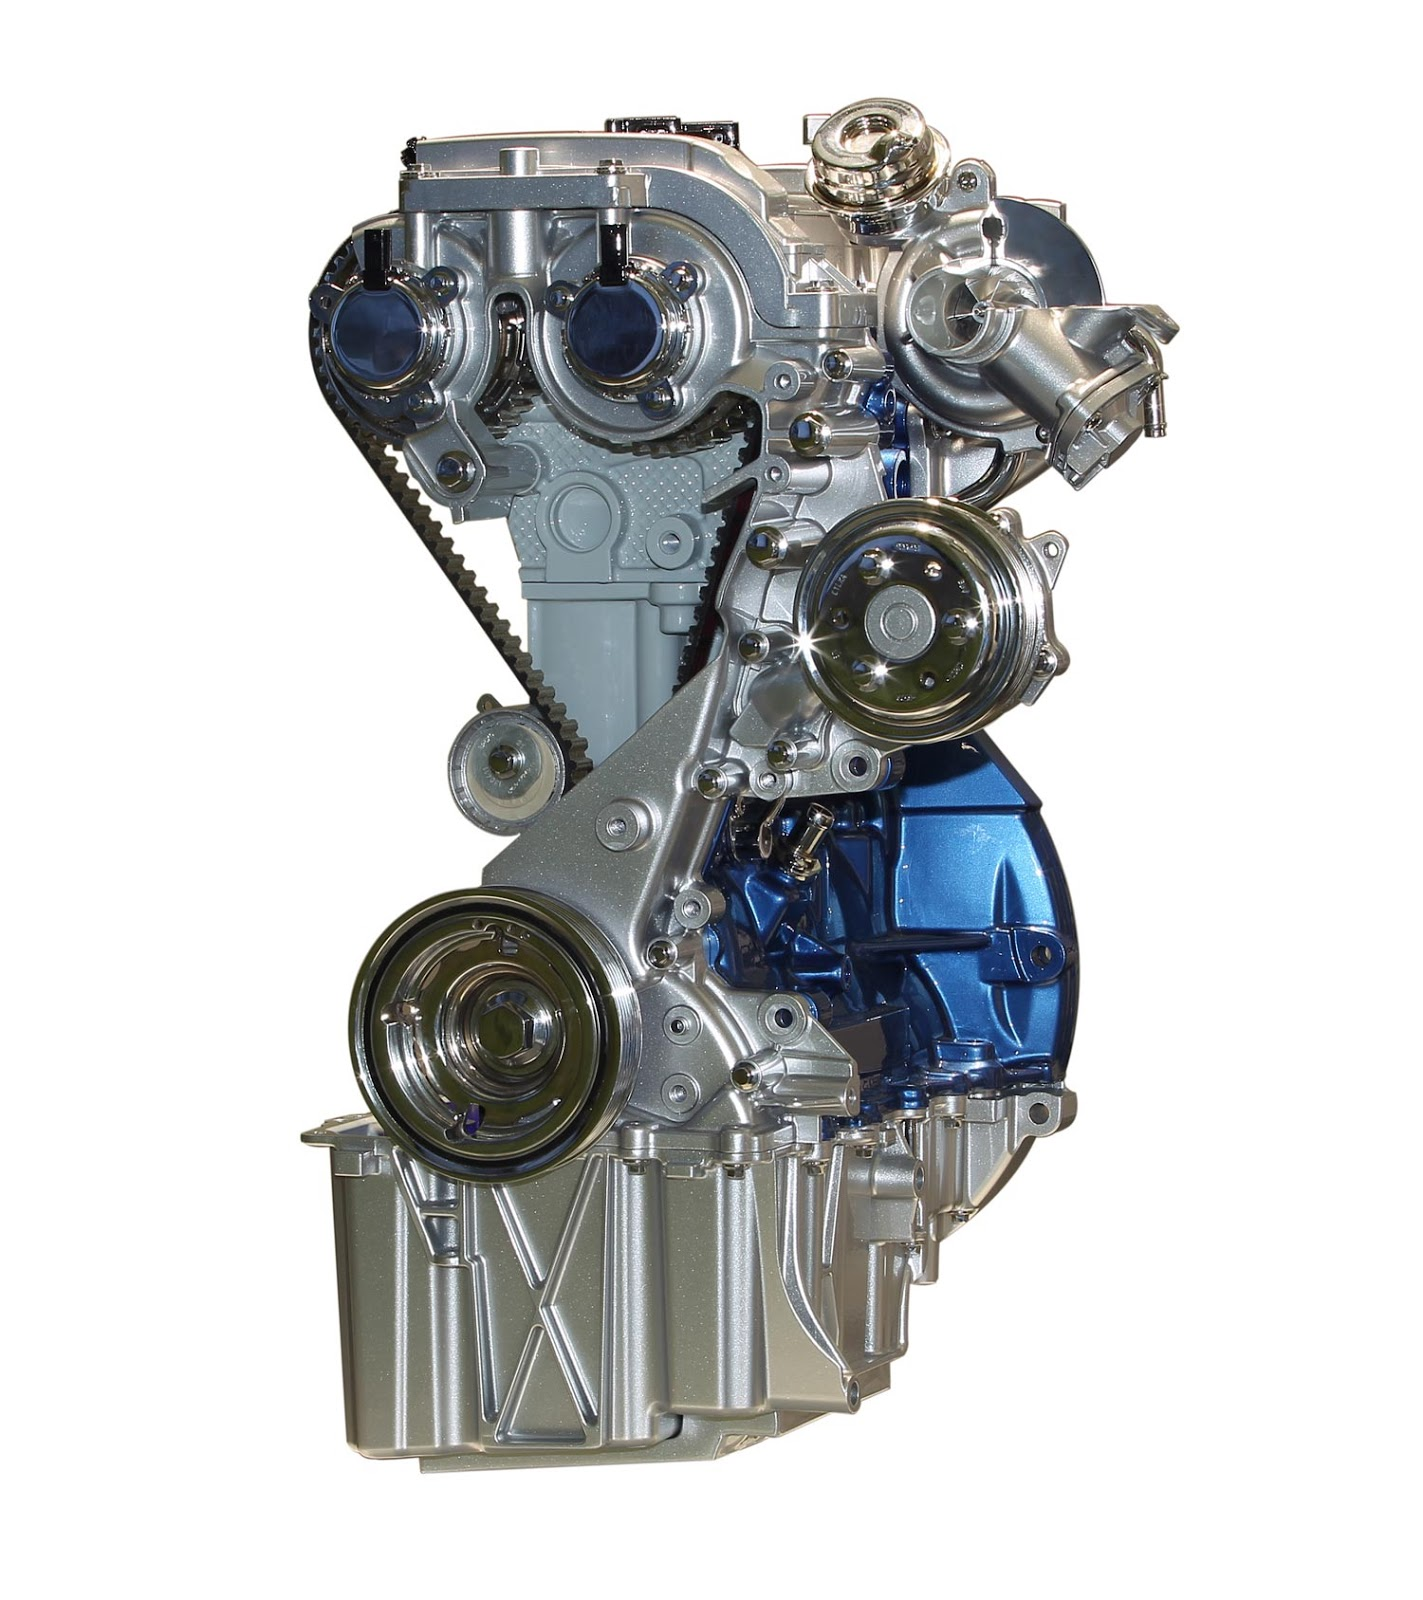 Ford 2 3 Engine Review: 2014 Ford Fiesta To Be Powered By 123-HP 1.0L EcoBoost I-3